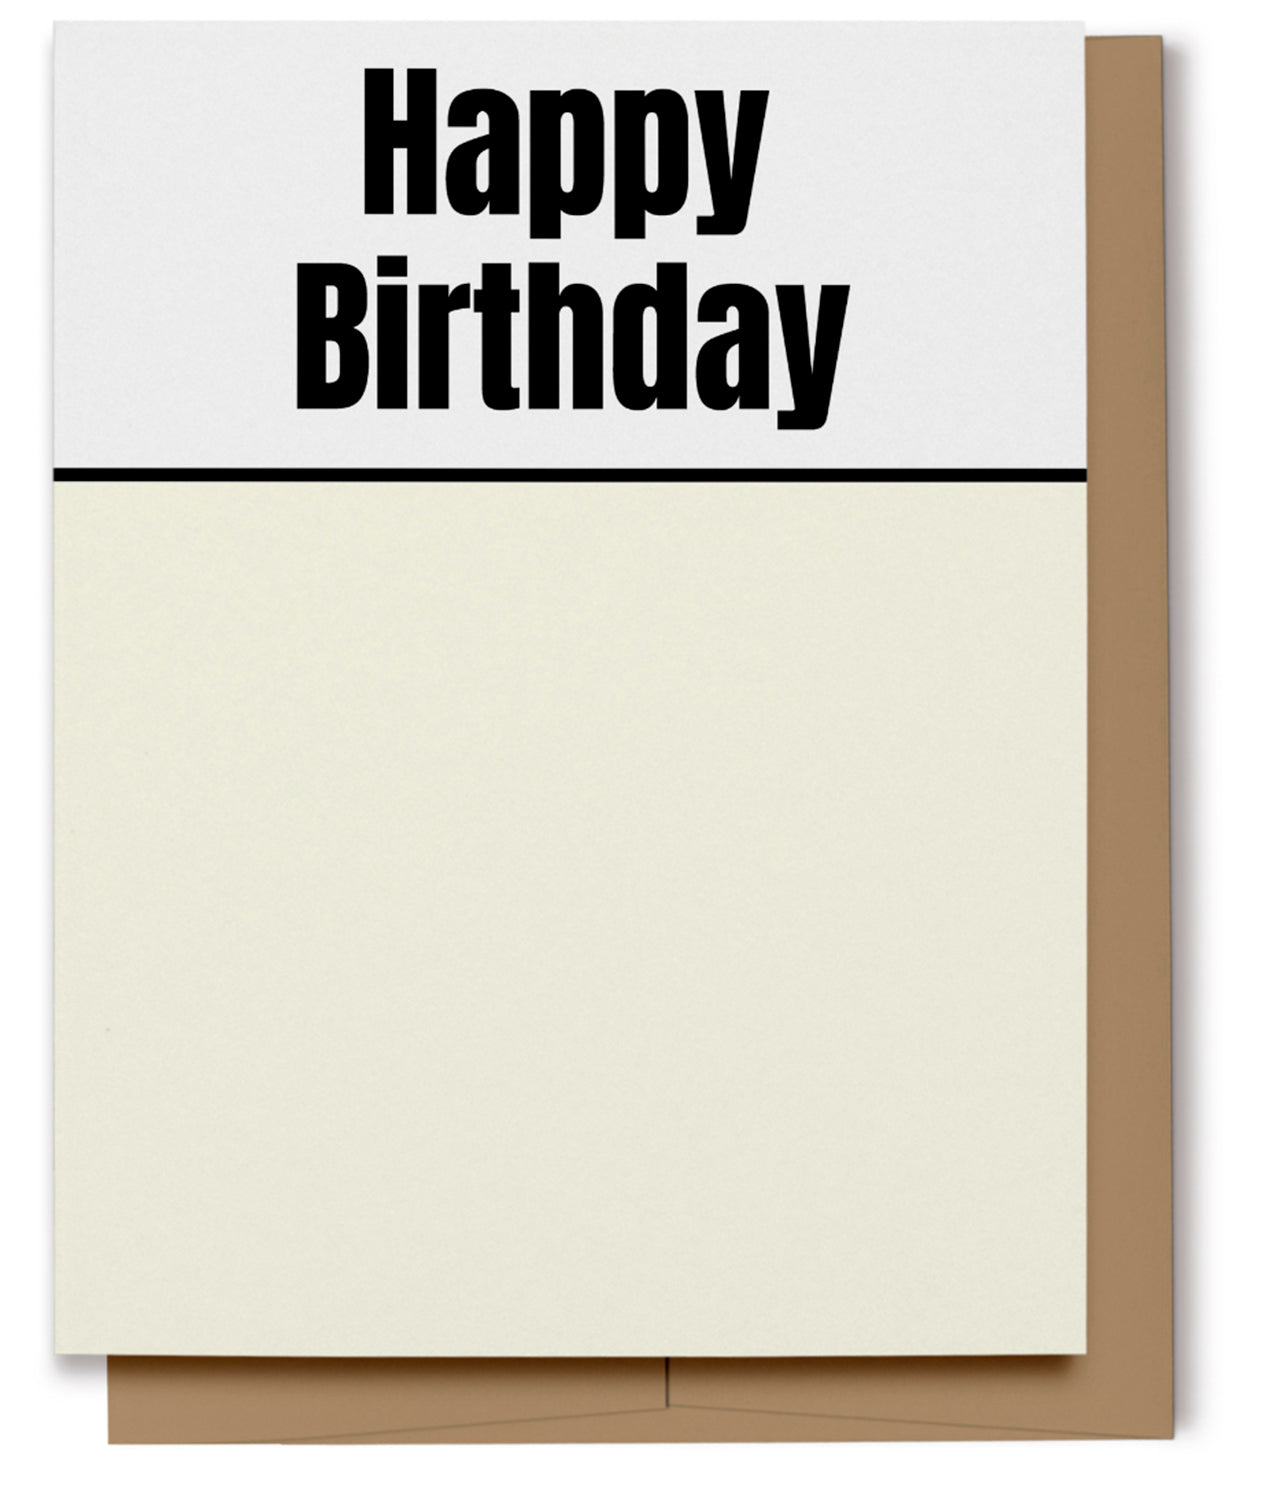 Happy Birthday Card - Black & Cream (100% Recycled)